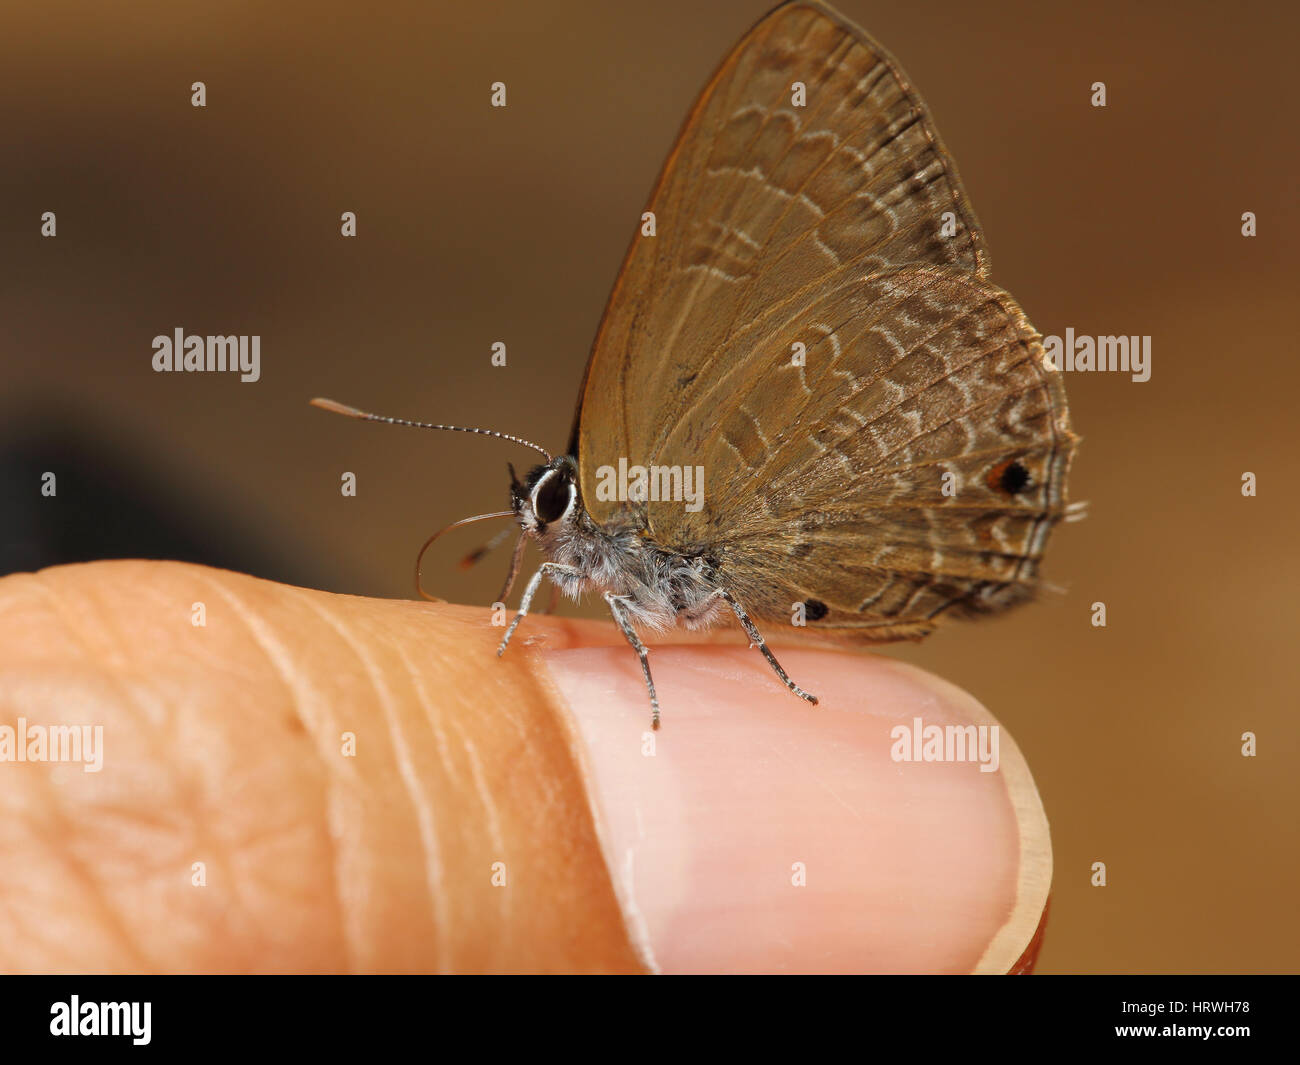 Butterfly On Finger Stock Photos & Butterfly On Finger Stock Images ...